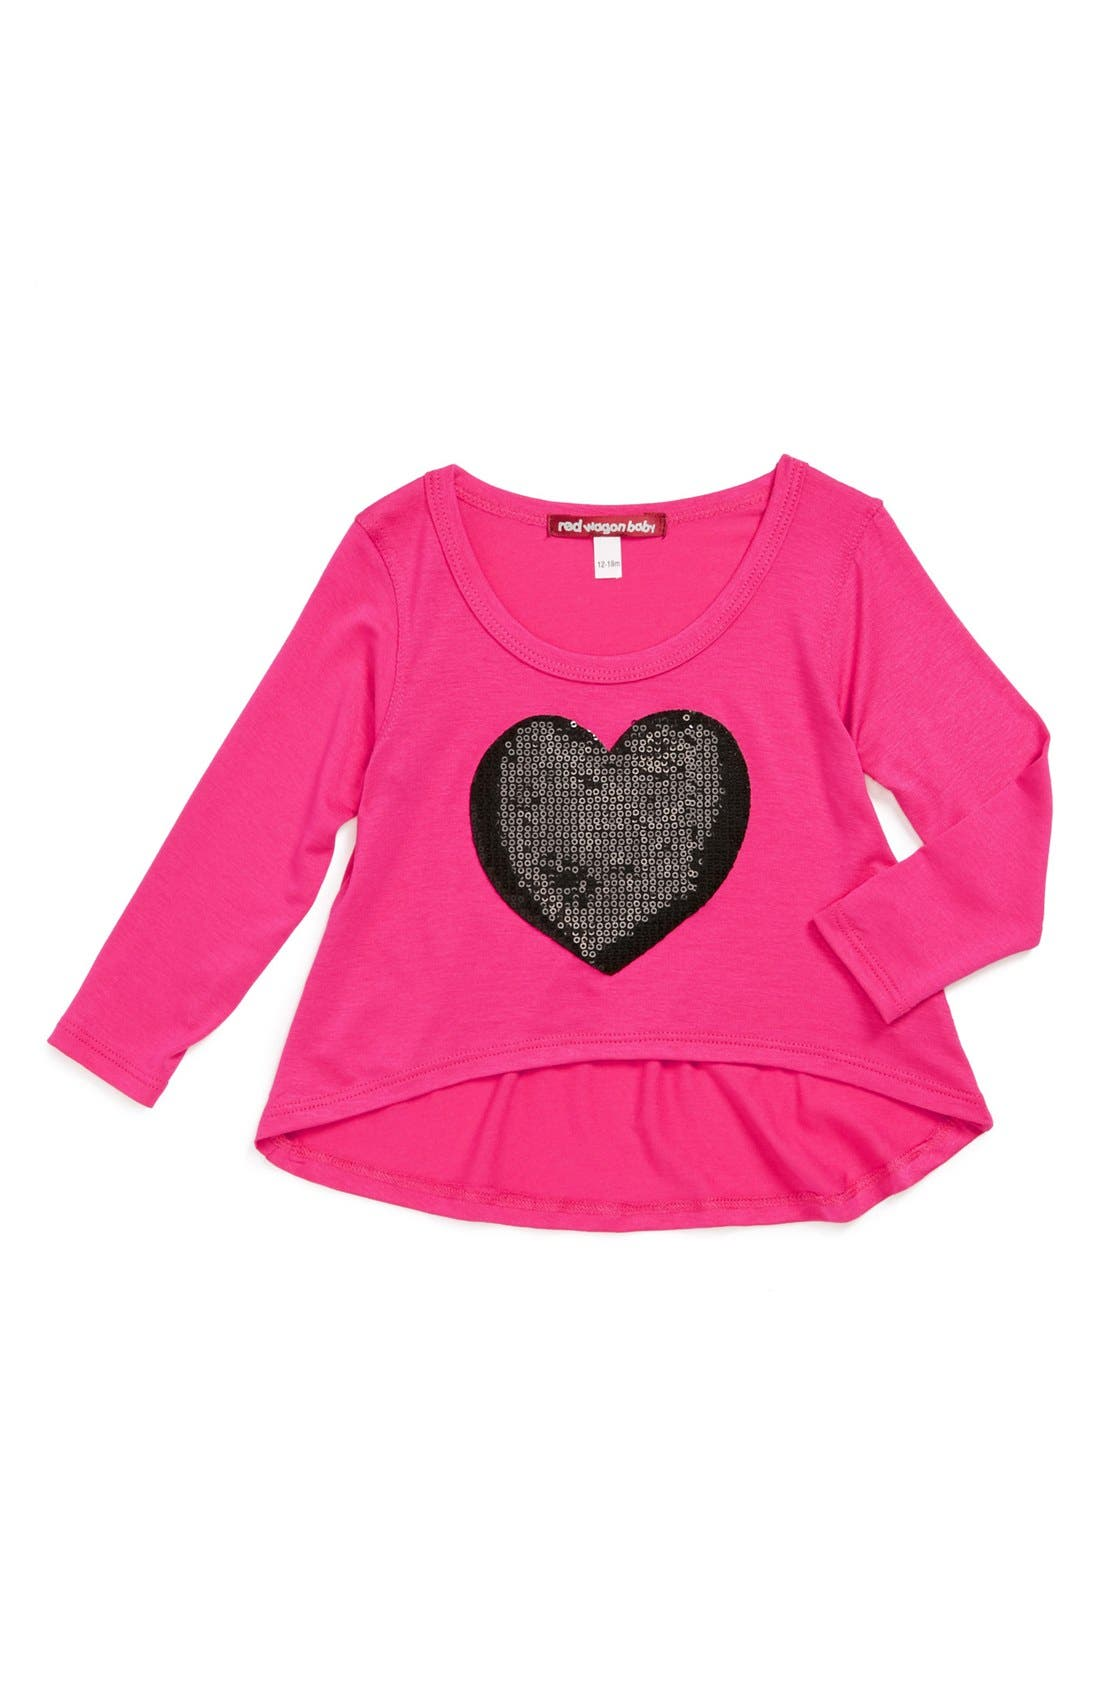 Alternate Image 1 Selected - Red Wagon Baby Sequin Heart Tunic (Baby Girls)